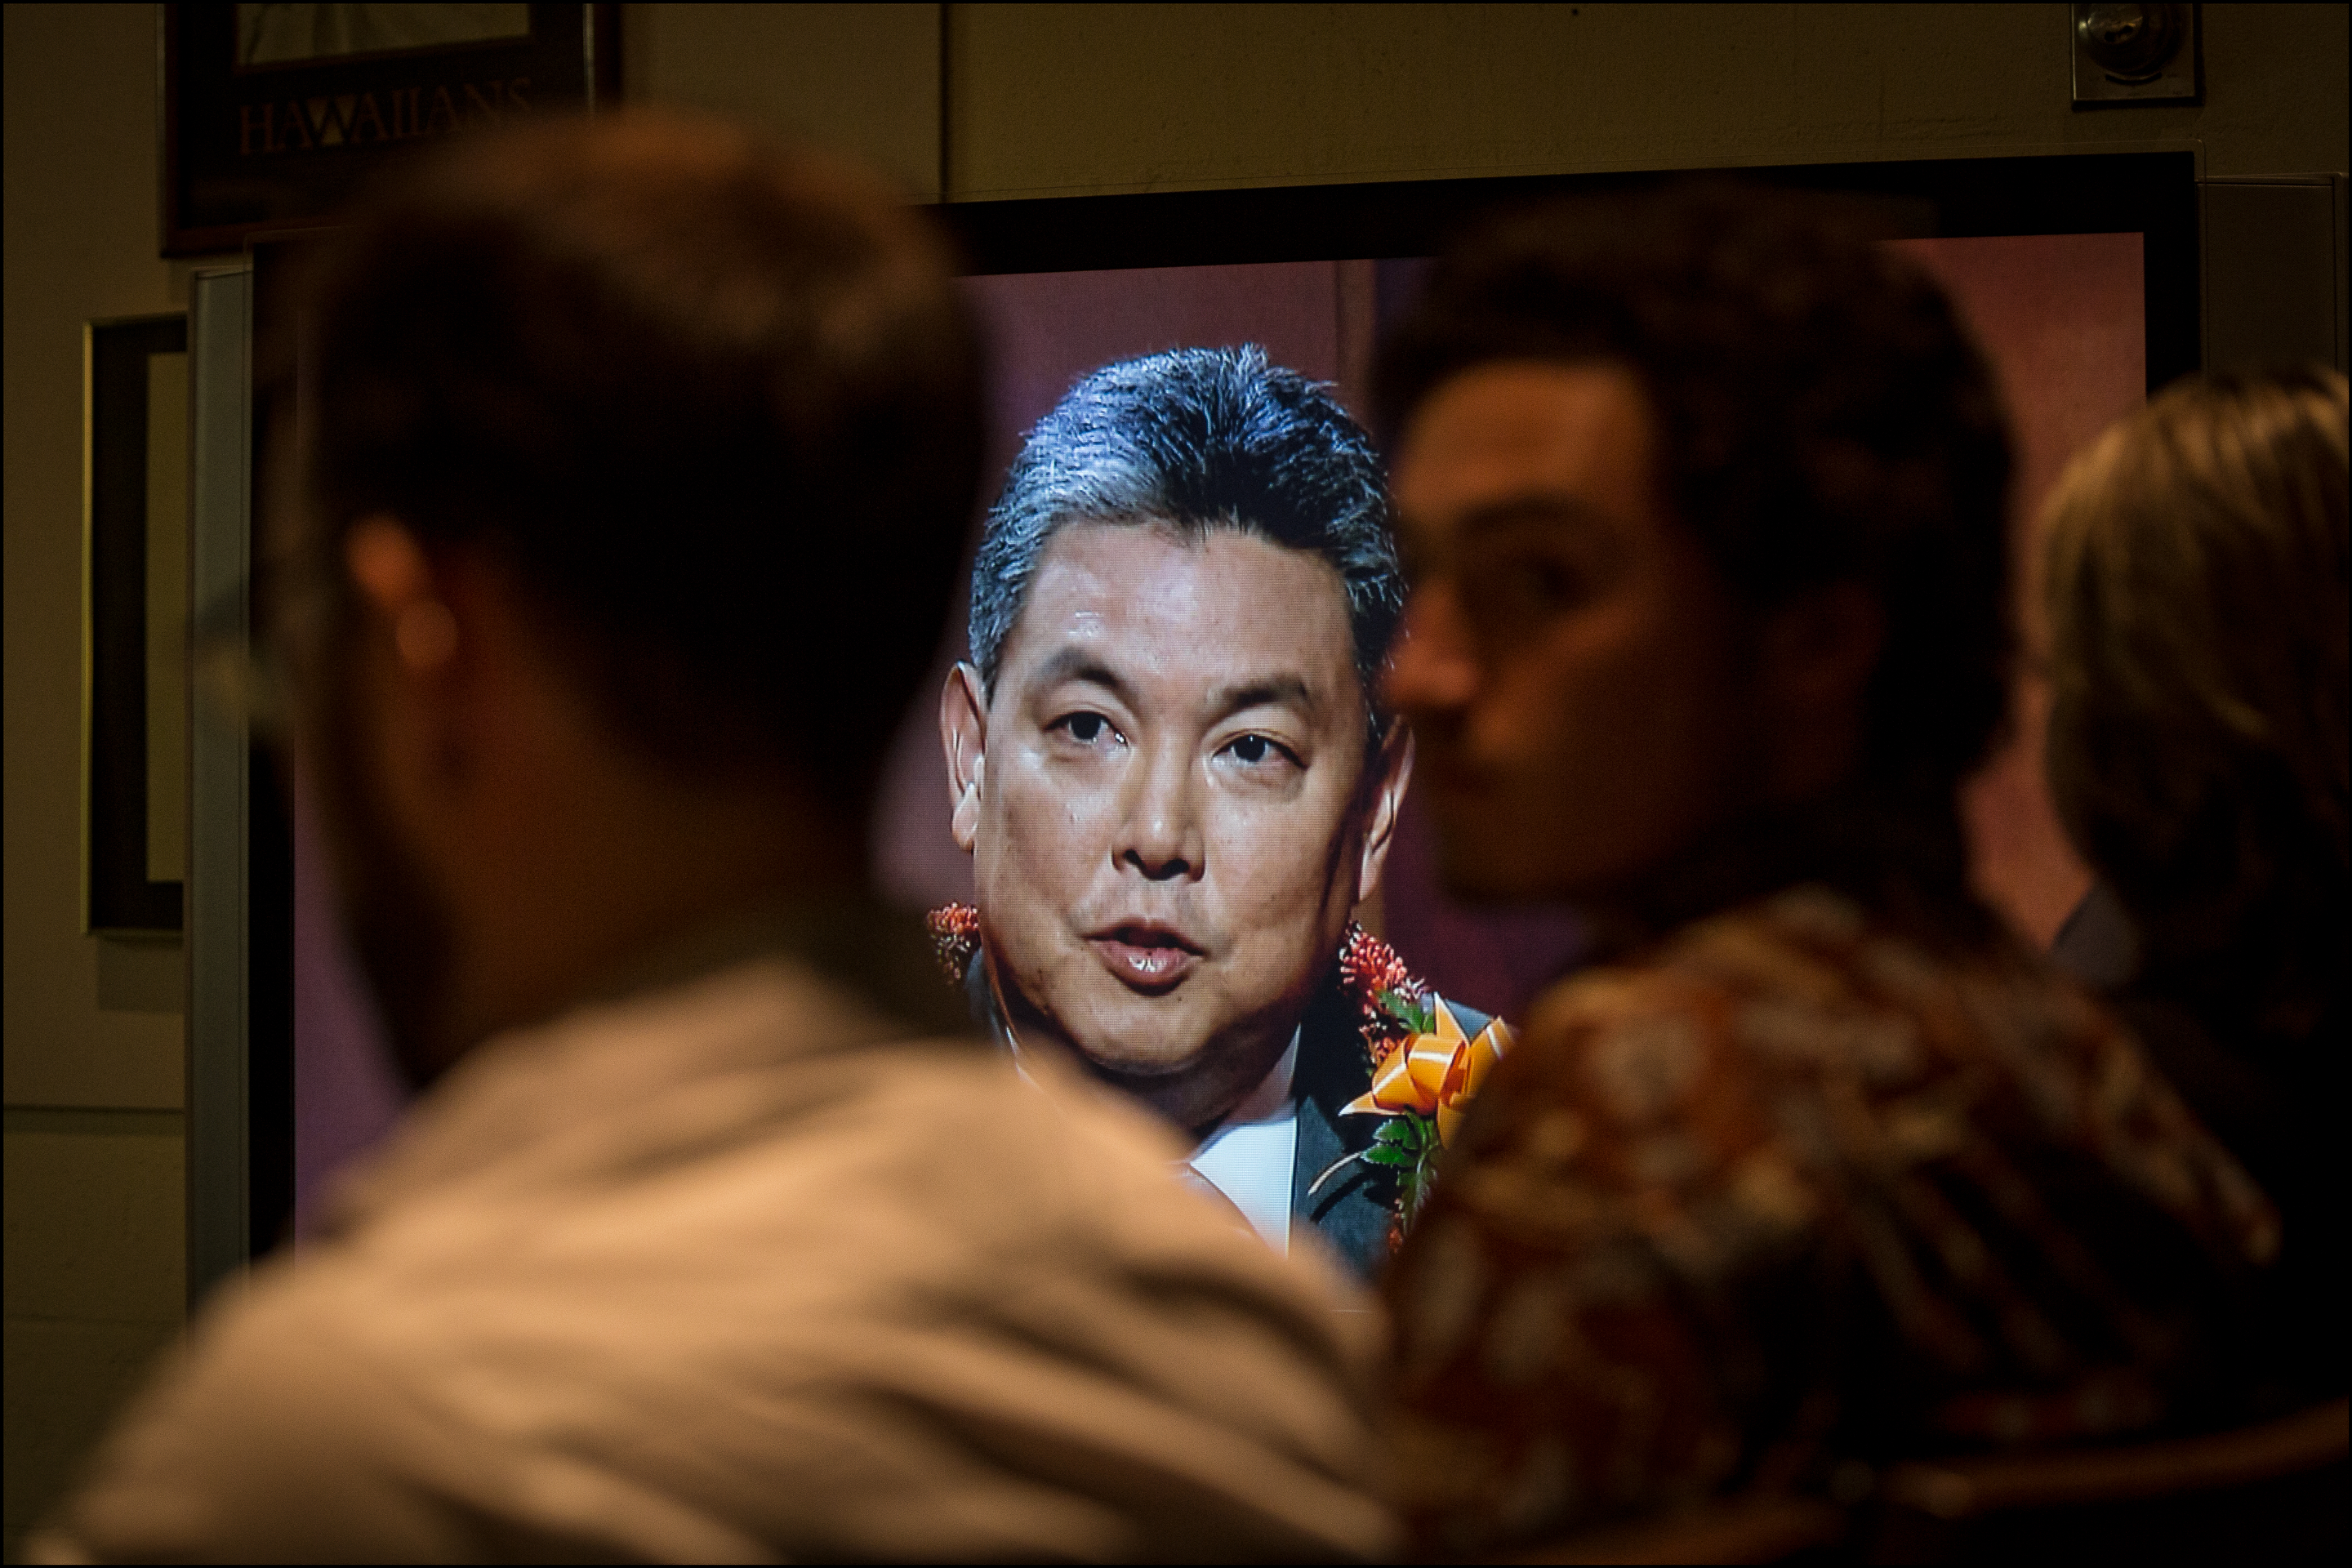 <p><strong>July 2014, Primary Battle:</strong> During the eight-candidate contest for the Democratic nomination for urban Oahu's 1st Congressional District, campaign staffers and reporters watch Mark Takai on a TV screen. (Civil Beat photo by PF Bentley)</p>